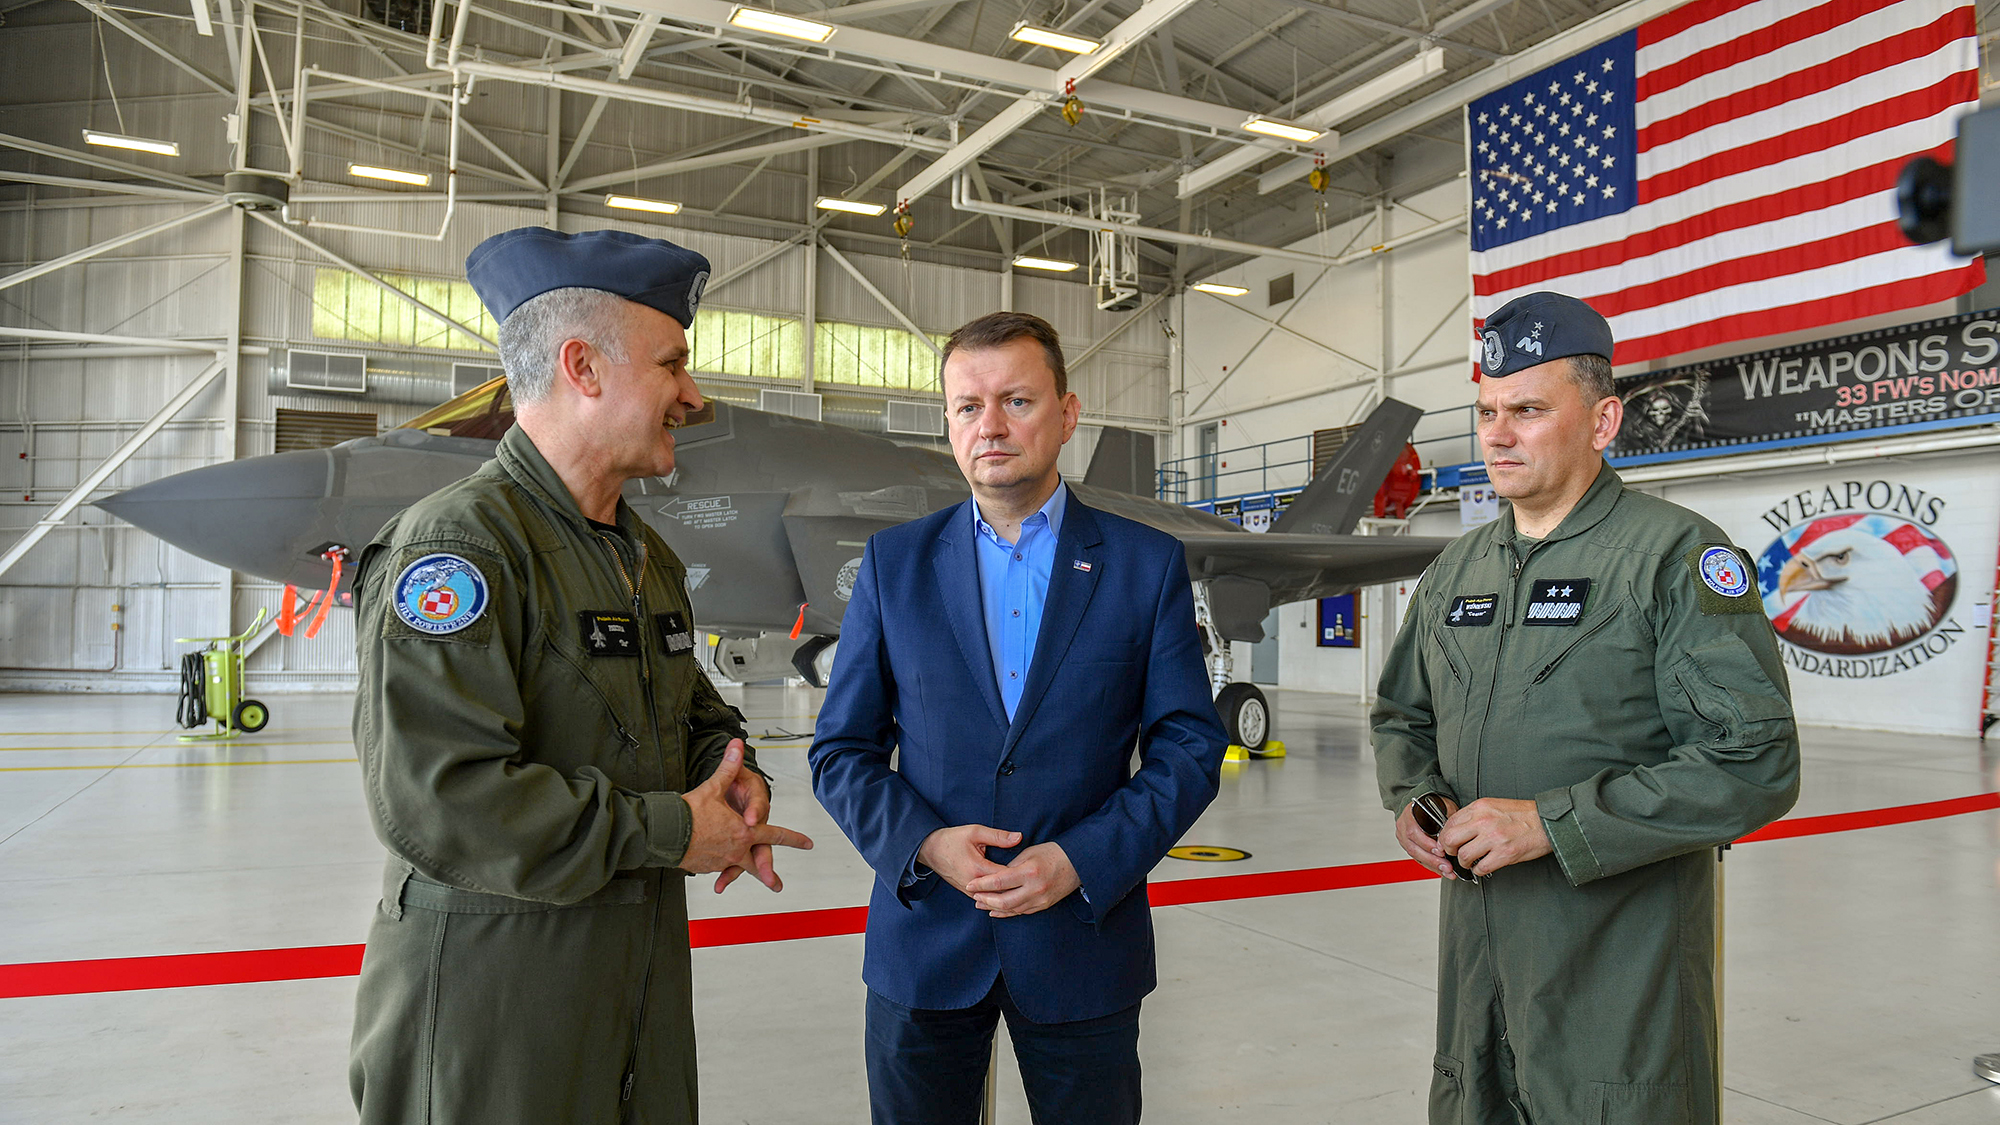 On June 10, the head of the Ministry of National Defence began his visit to the USA and visited the Eglin Air Force Base, where, among others he became acquainted with the F-35 development program - the latest - 5th generation aircraft.